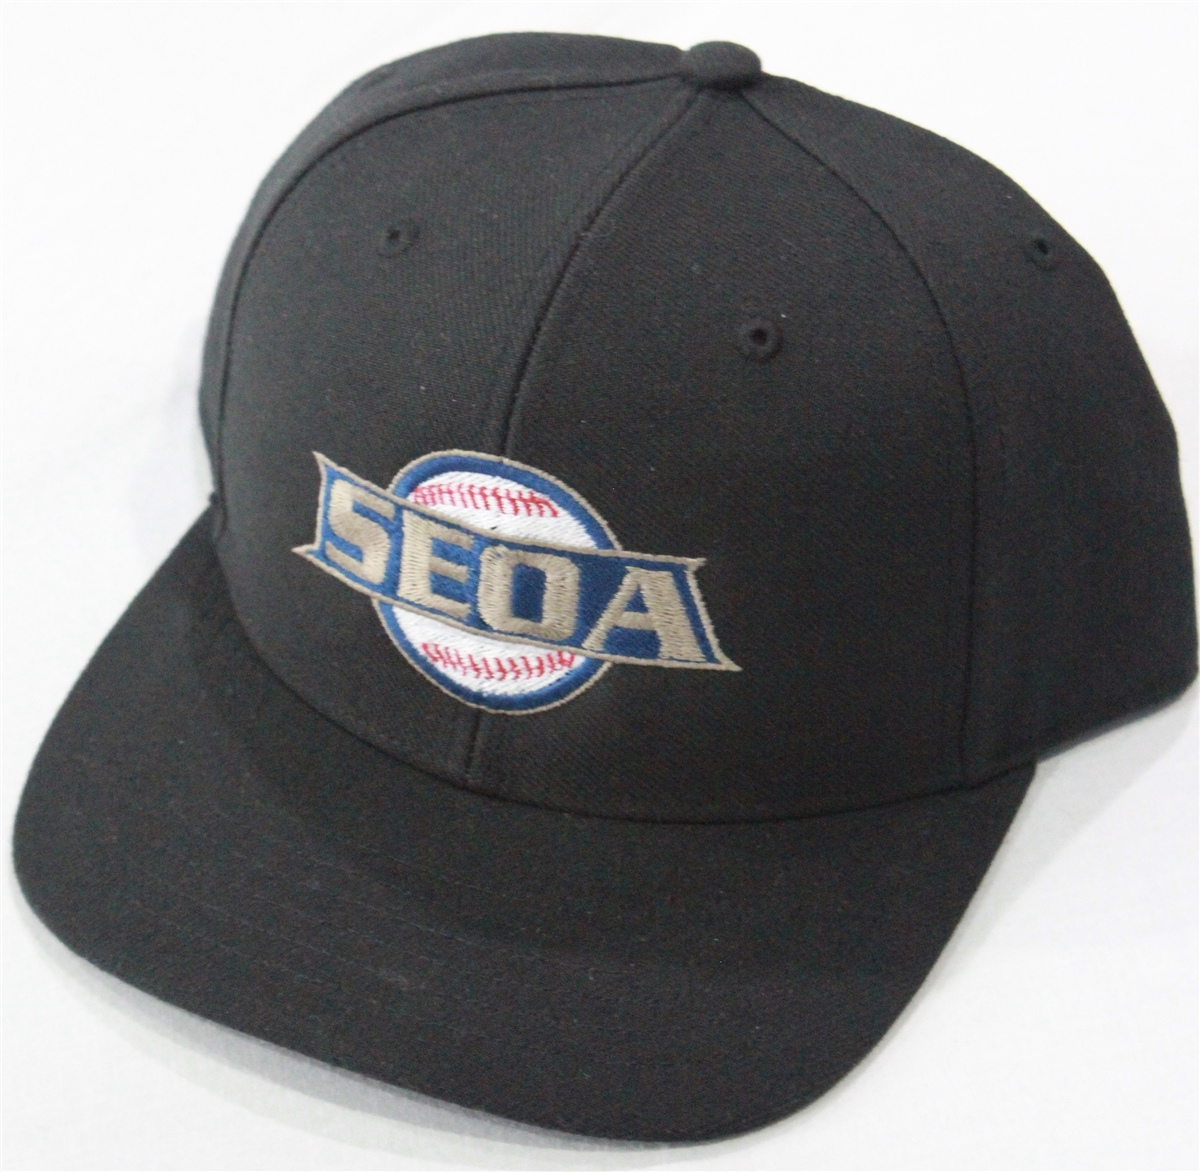 86c4a8effab049 Richardson Surge Fitted Umpire Hat with SEOA - Southern Elite Officials  Association